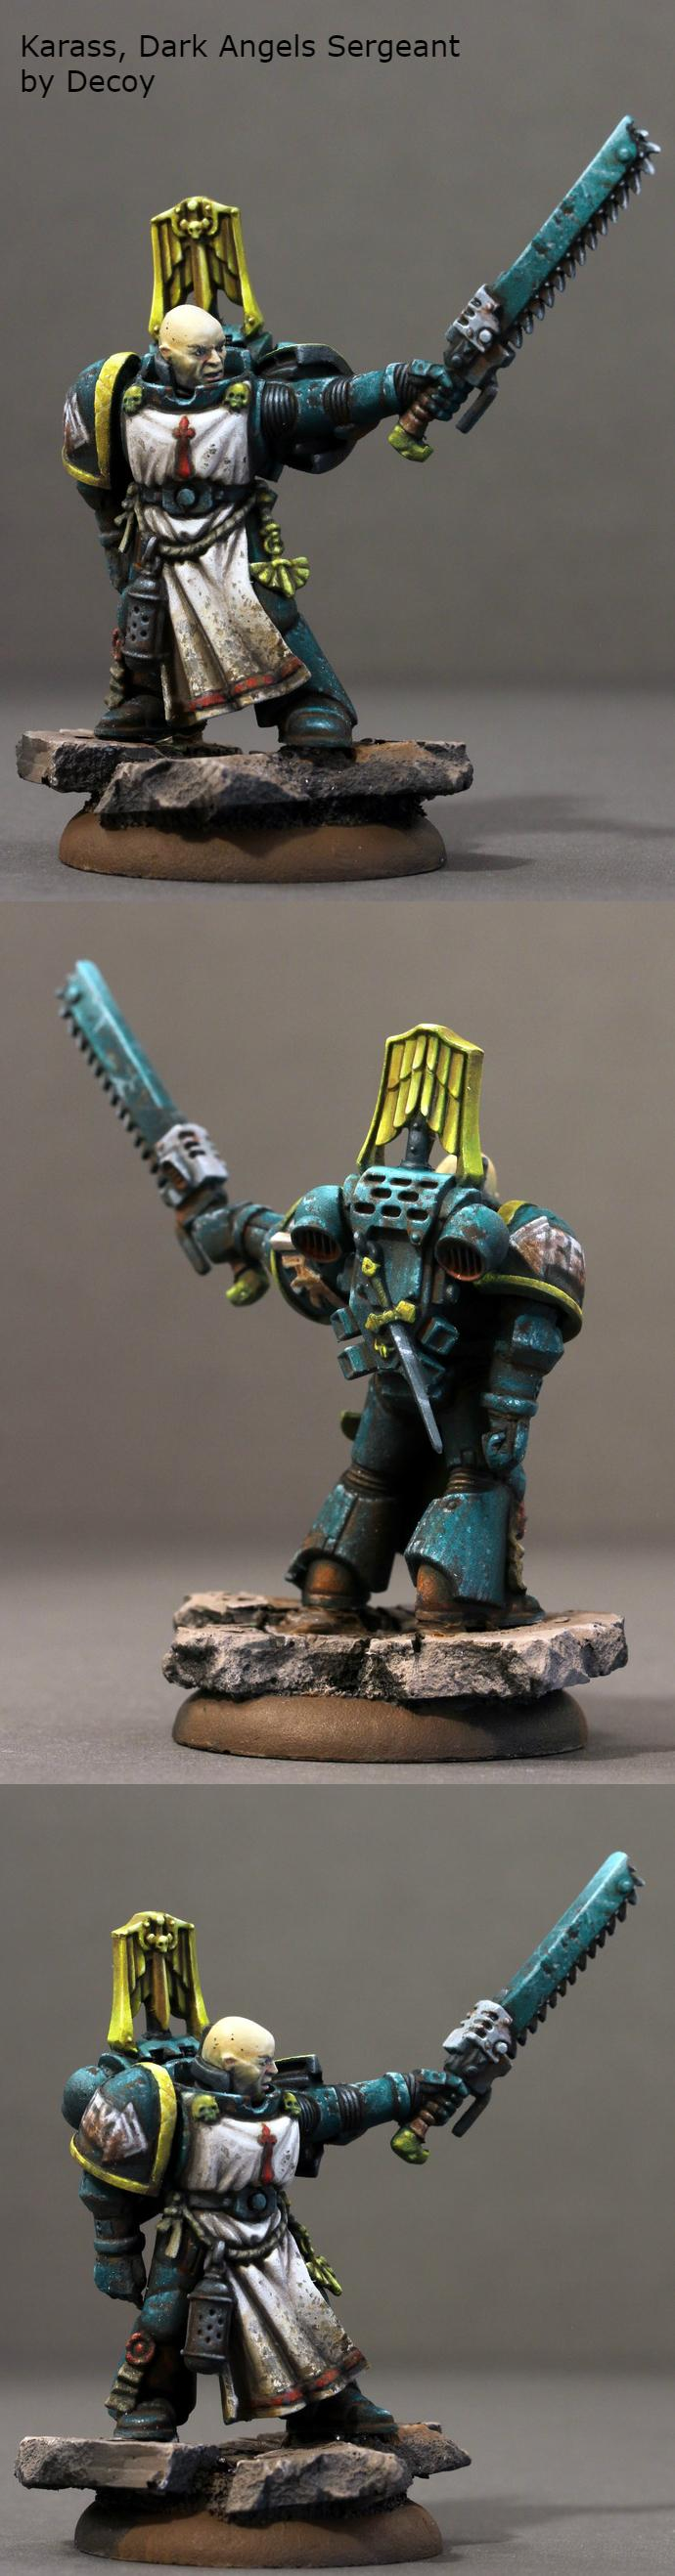 Boardgame, Dark Angels, Miniature, Sergeant, Spacemarine, Warhammer 40,000